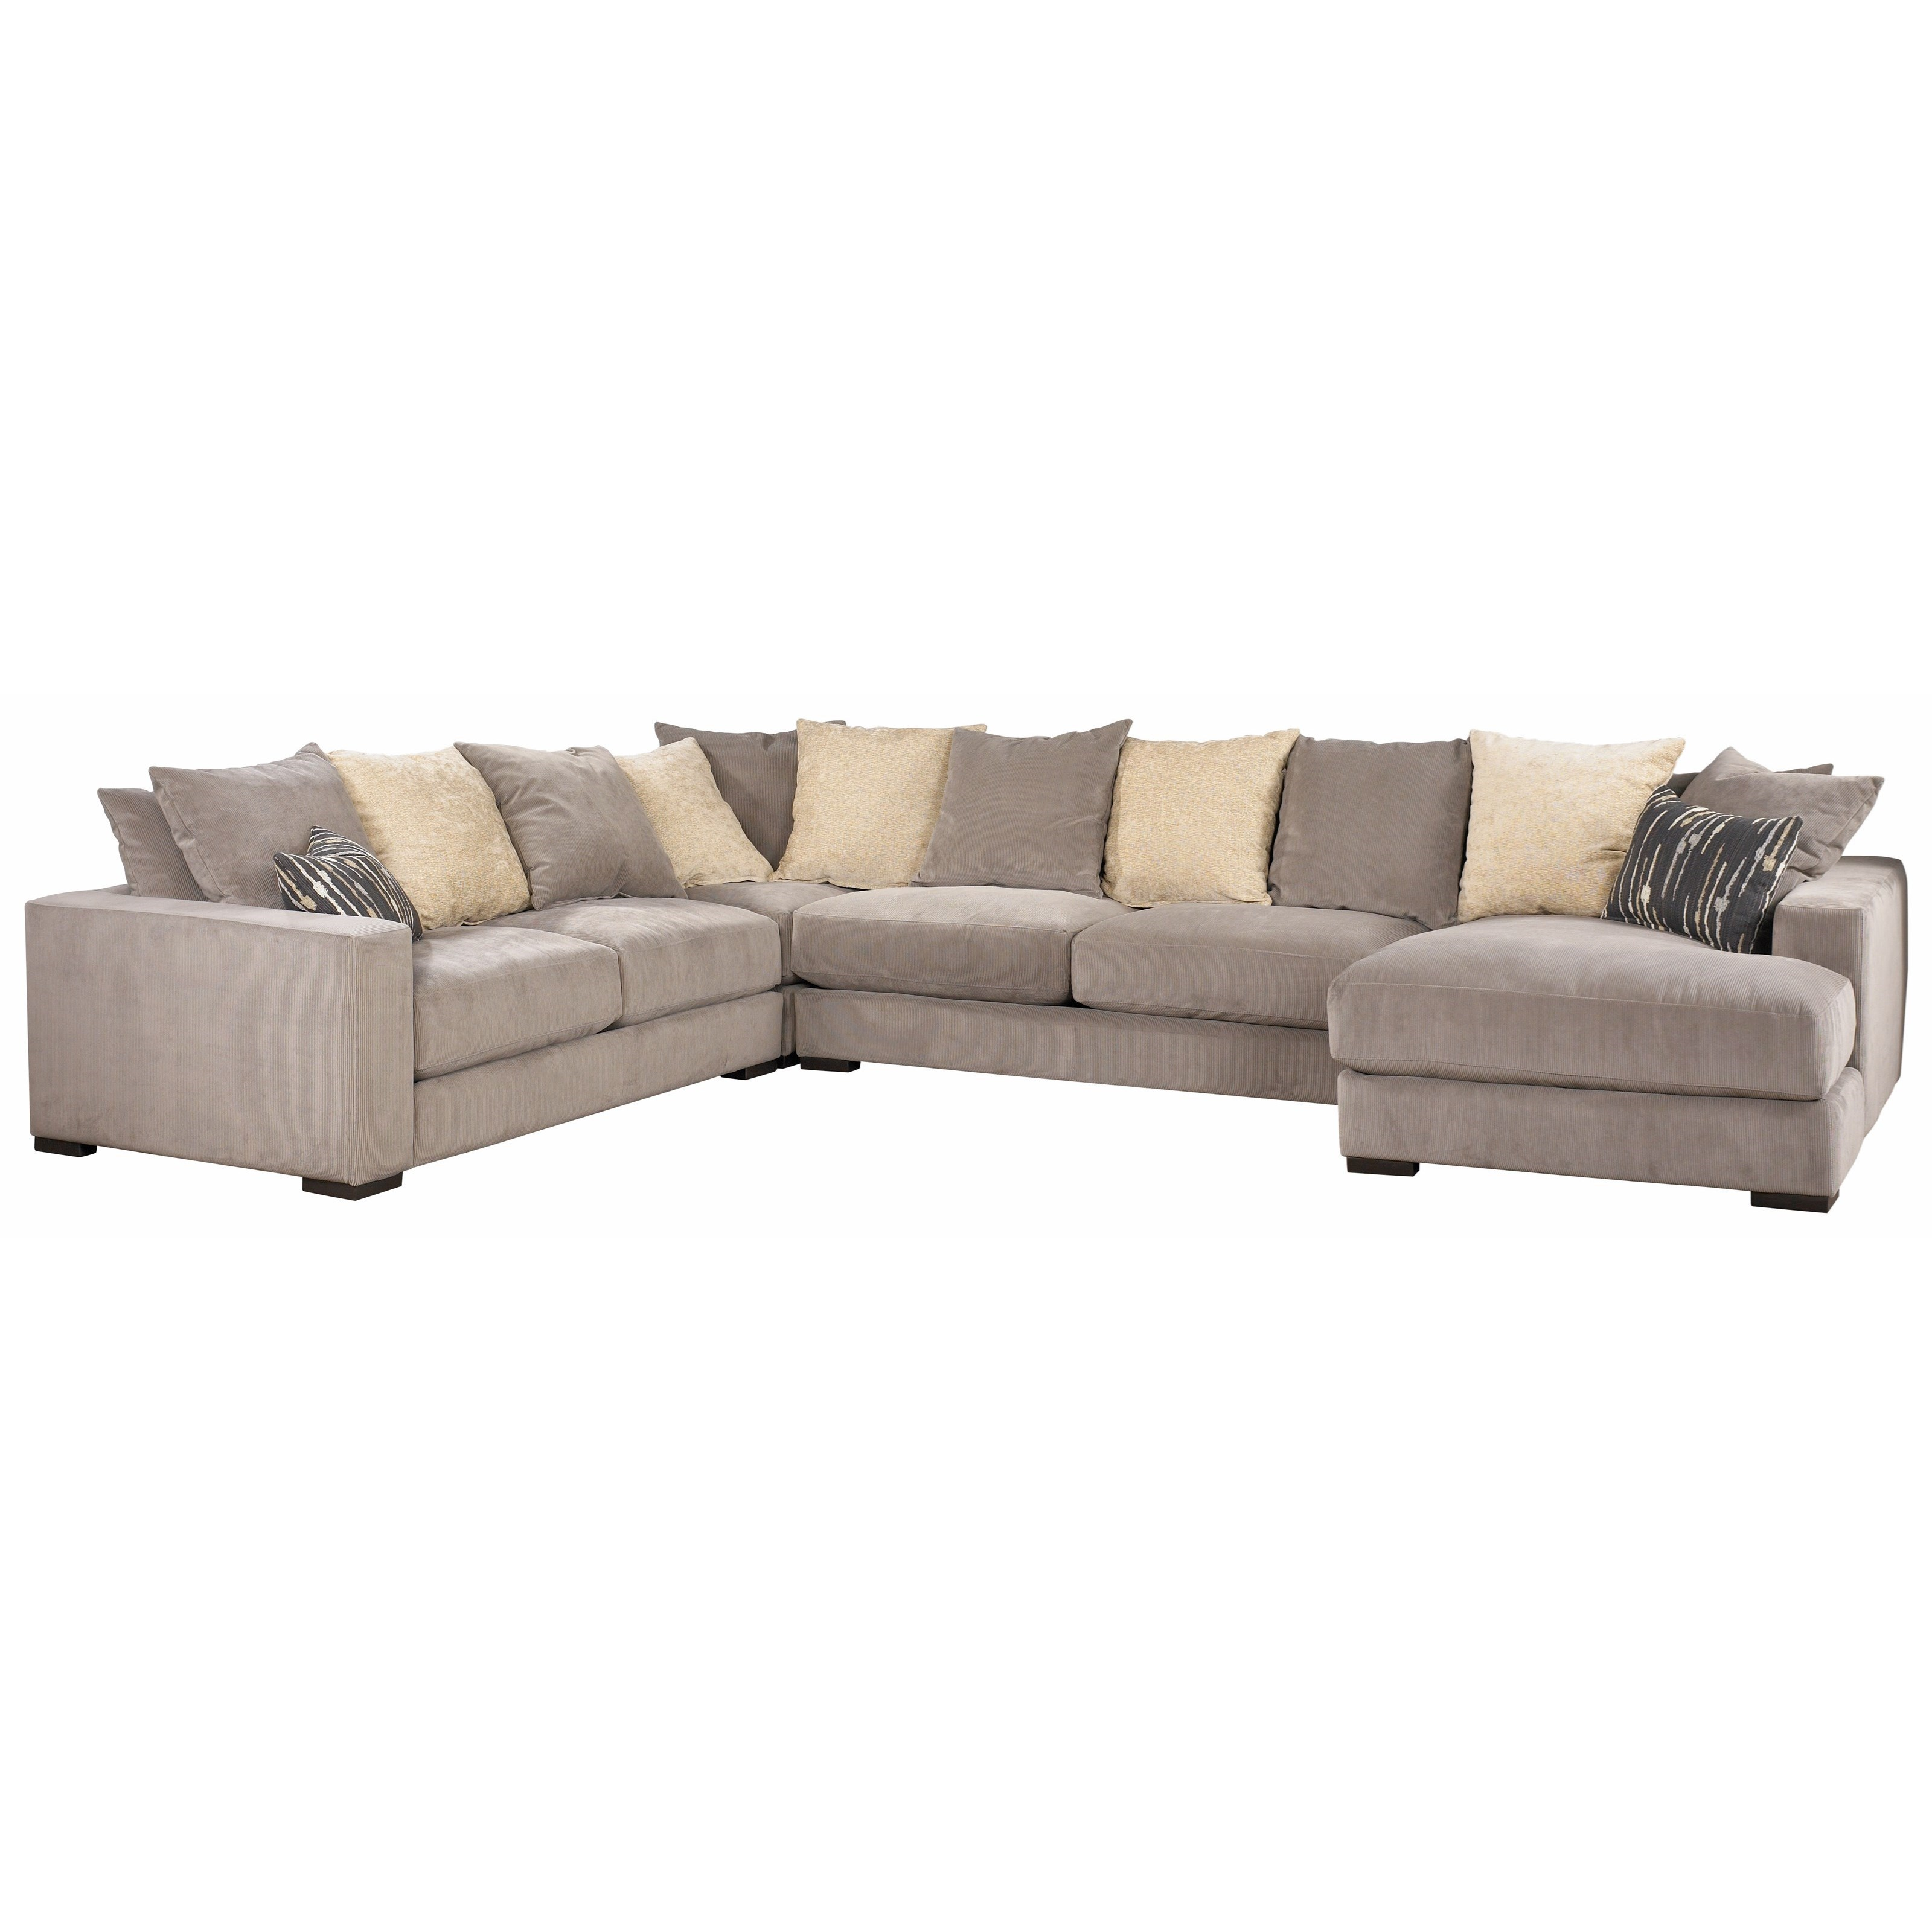 Jonathan Louis Lombardy Sectional Sofa With Track Arms And